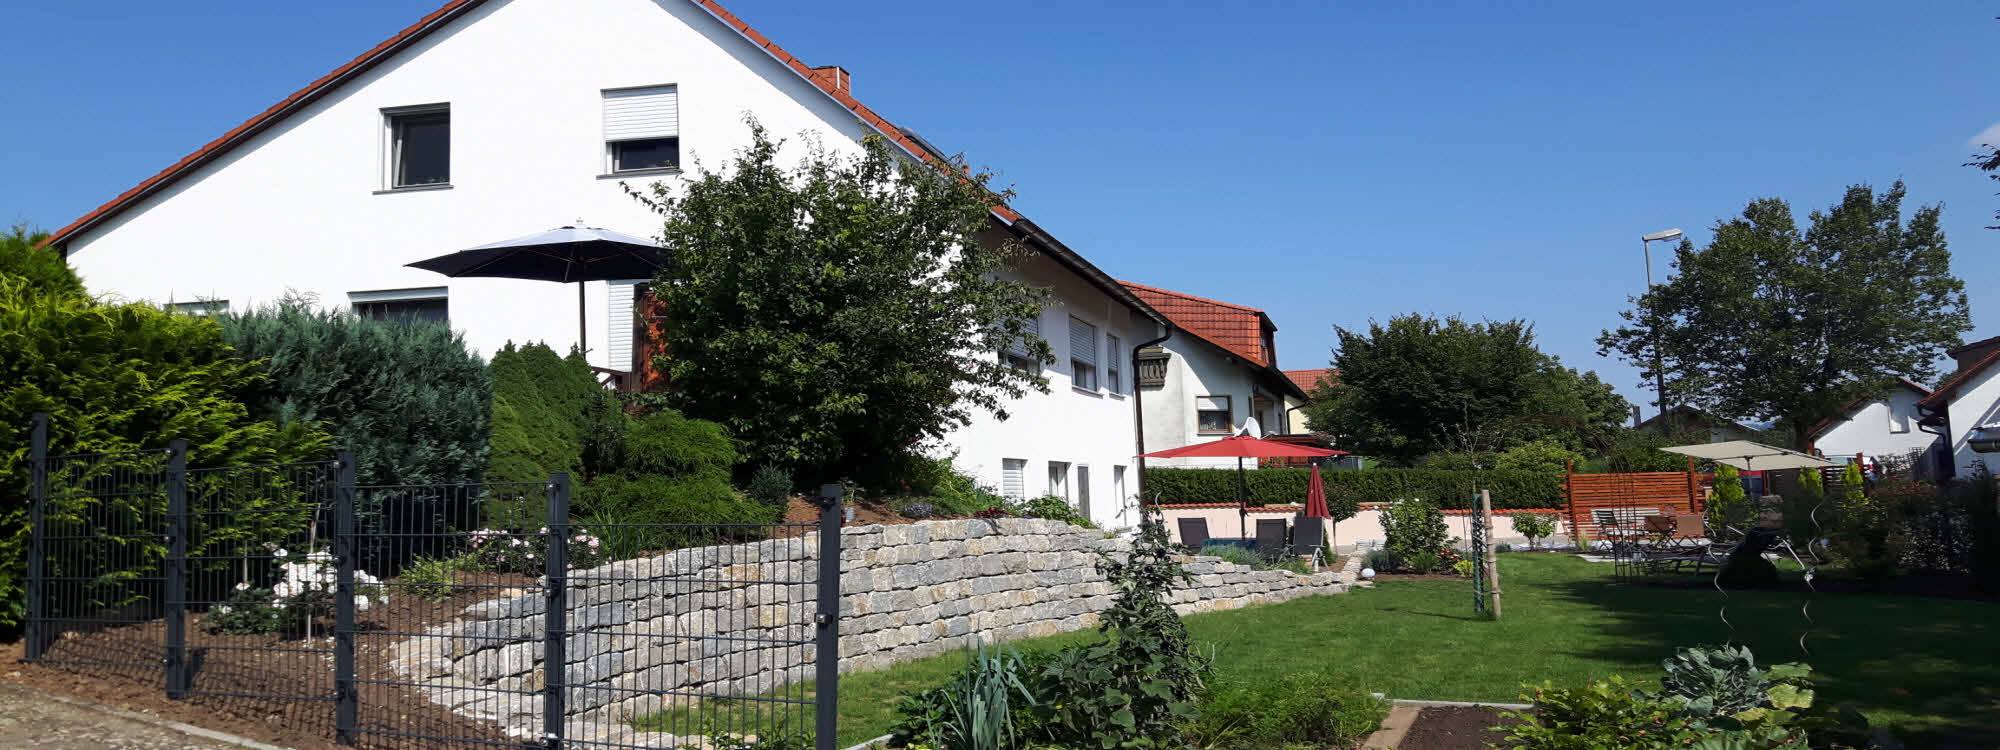 Holiday flat close to Bamberg: Garden and House